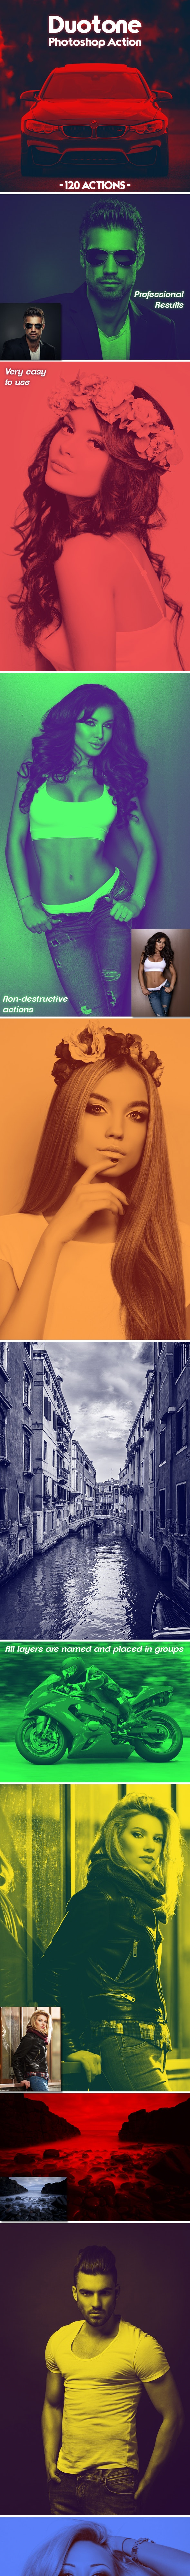 120 Duotone Photoshop Actions - Photo Effects Actions